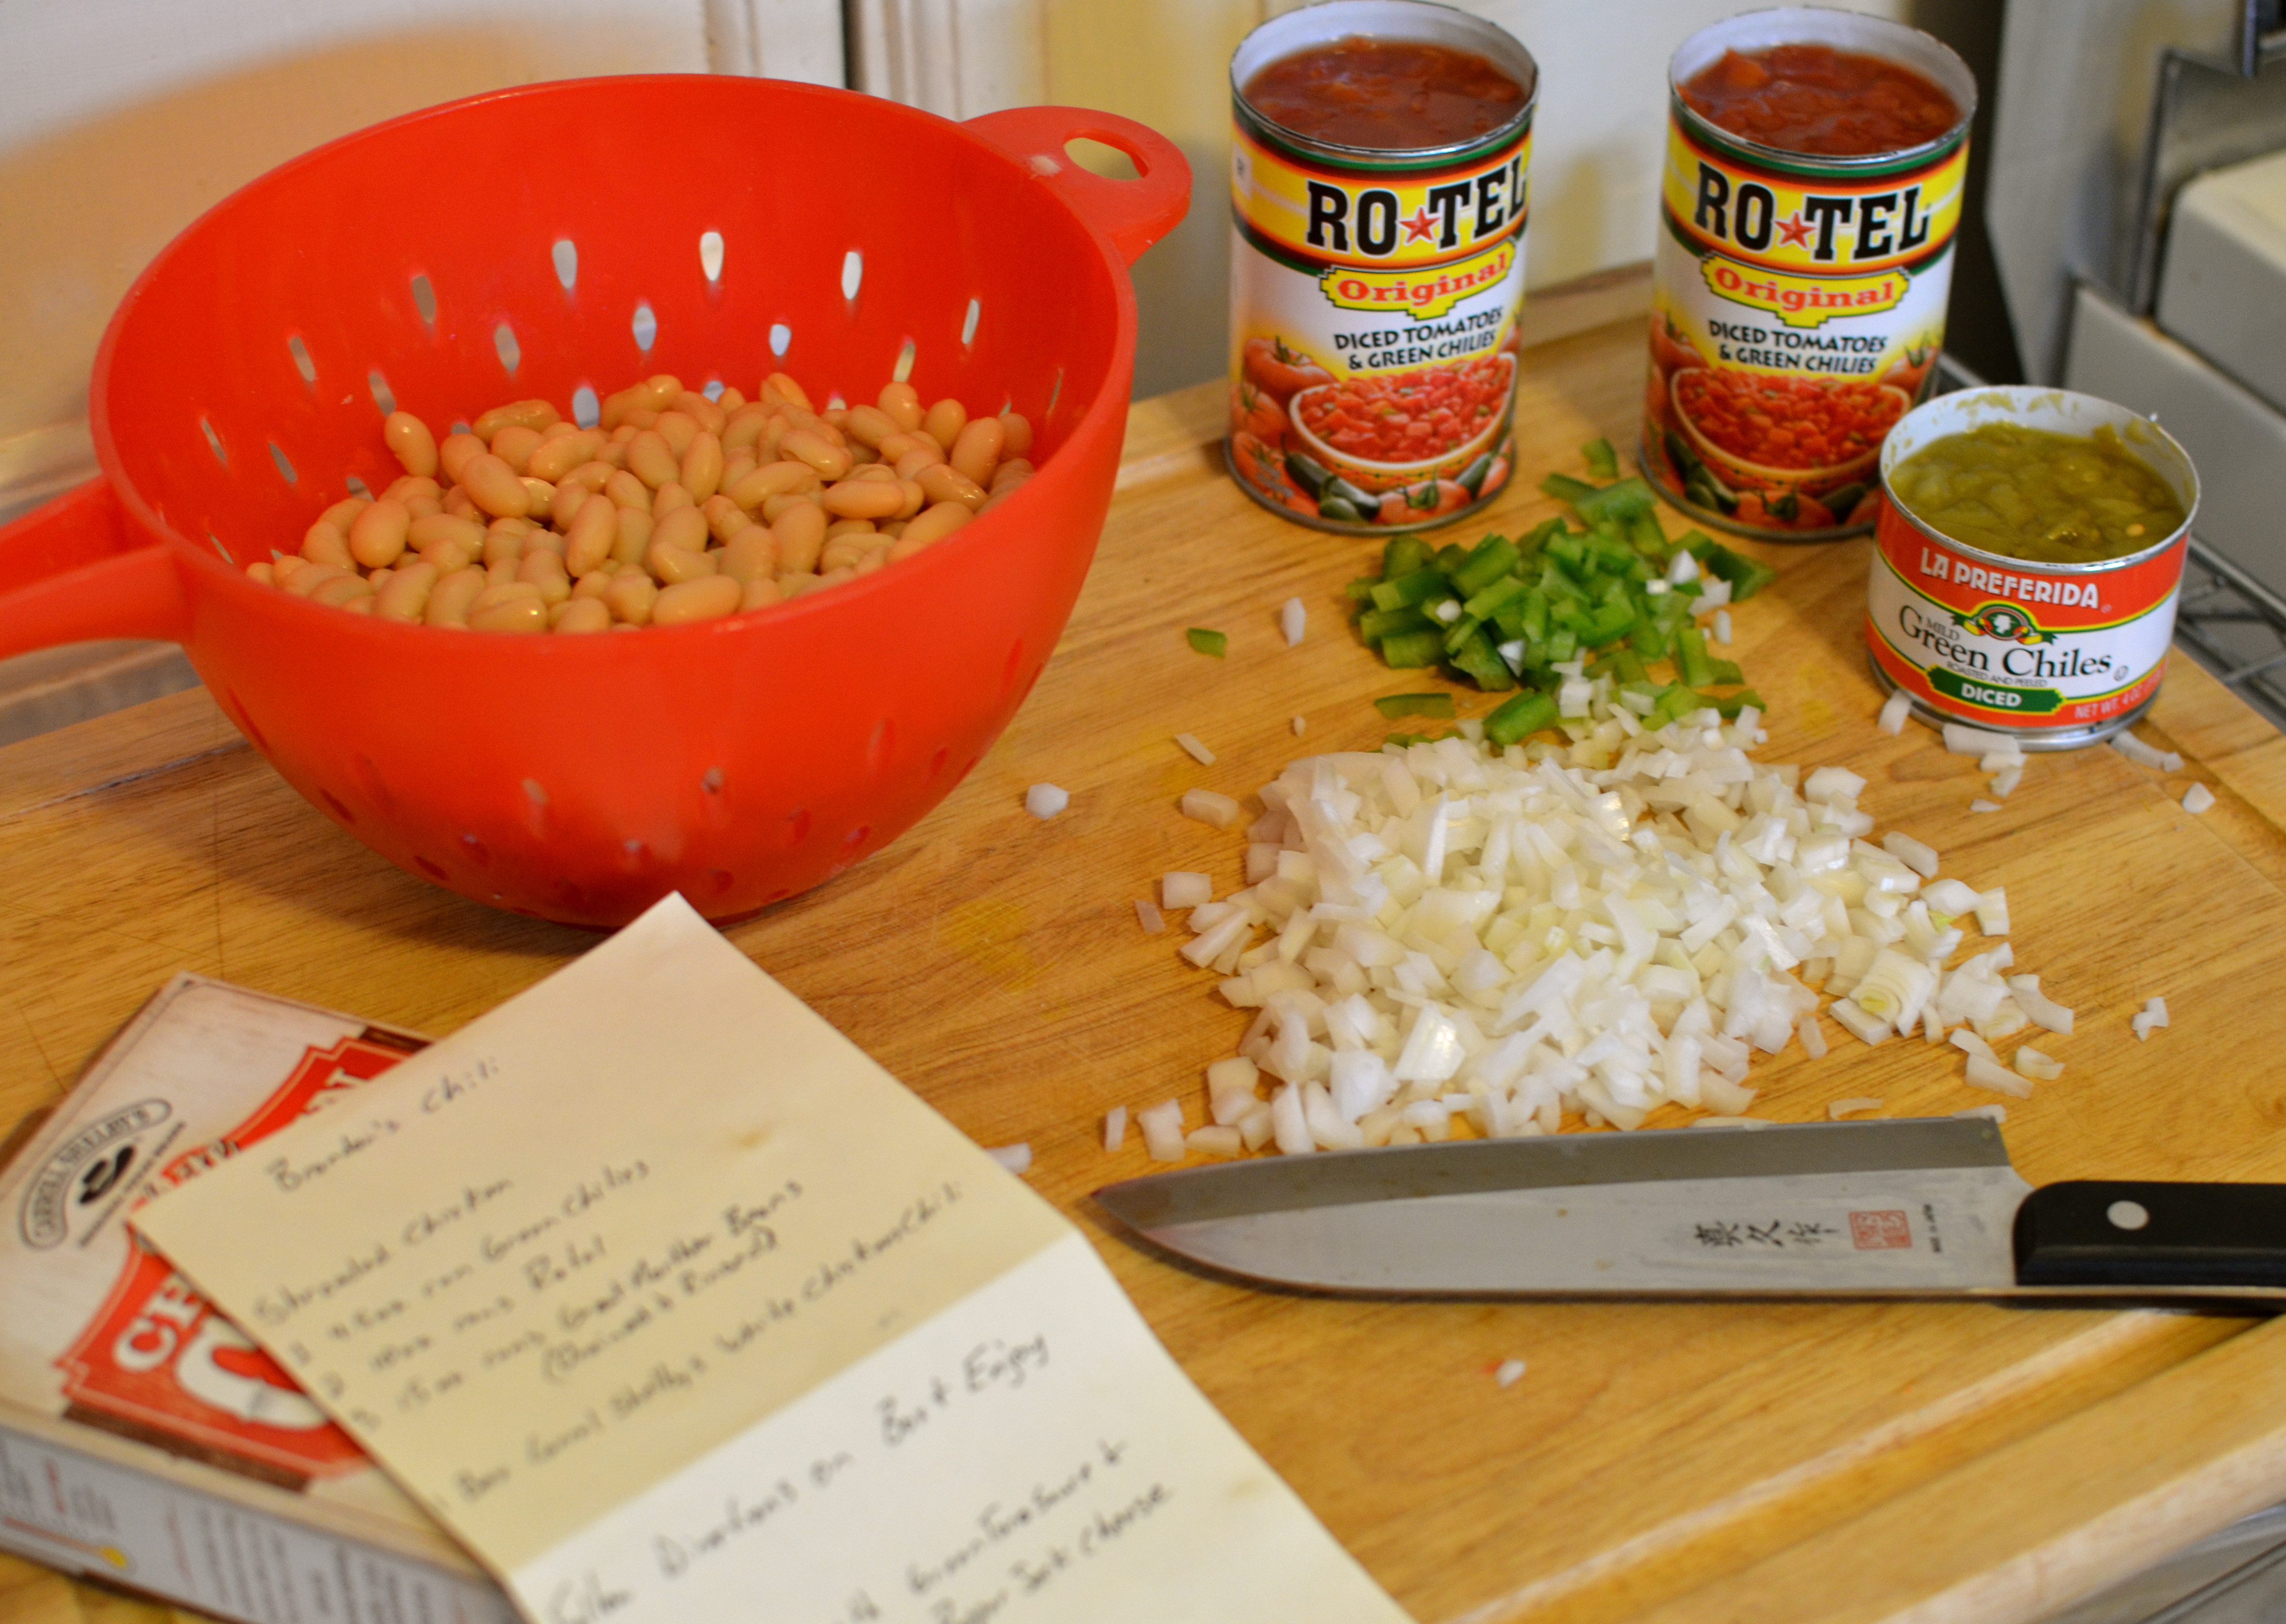 Carroll Shelby S White Chicken Chili Gluten Free Kit Celiac In The City